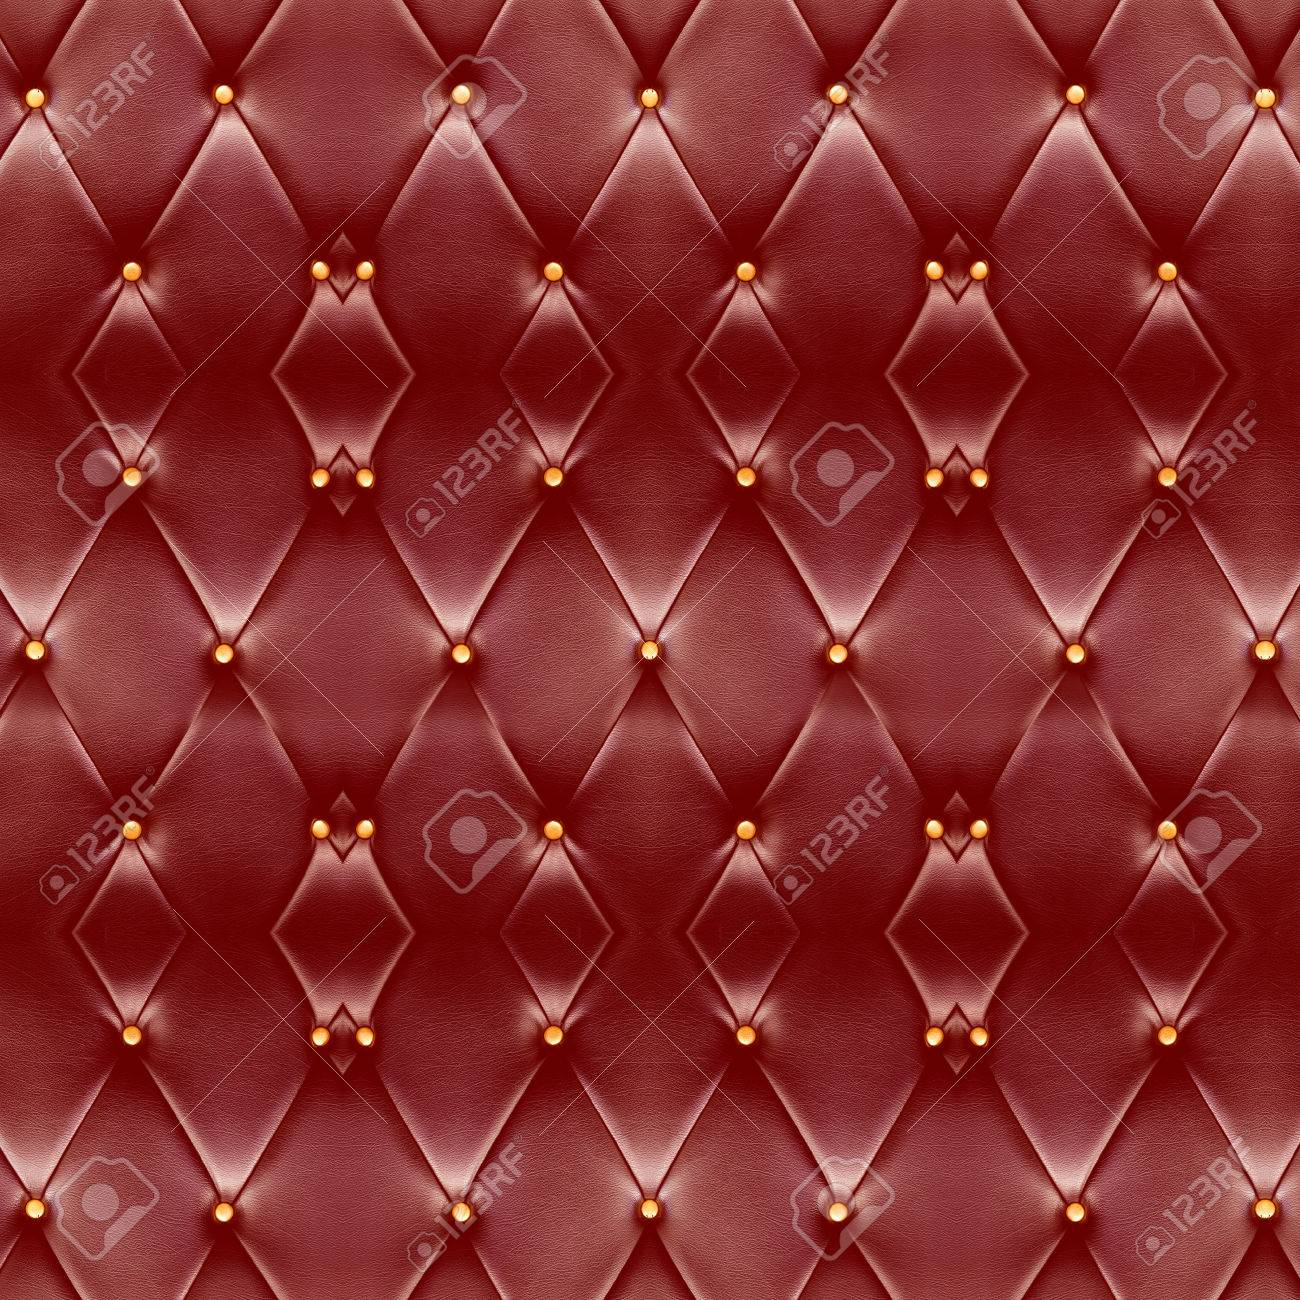 Texture Beautiful Deep Red Leather Sofa With Golden Buttons